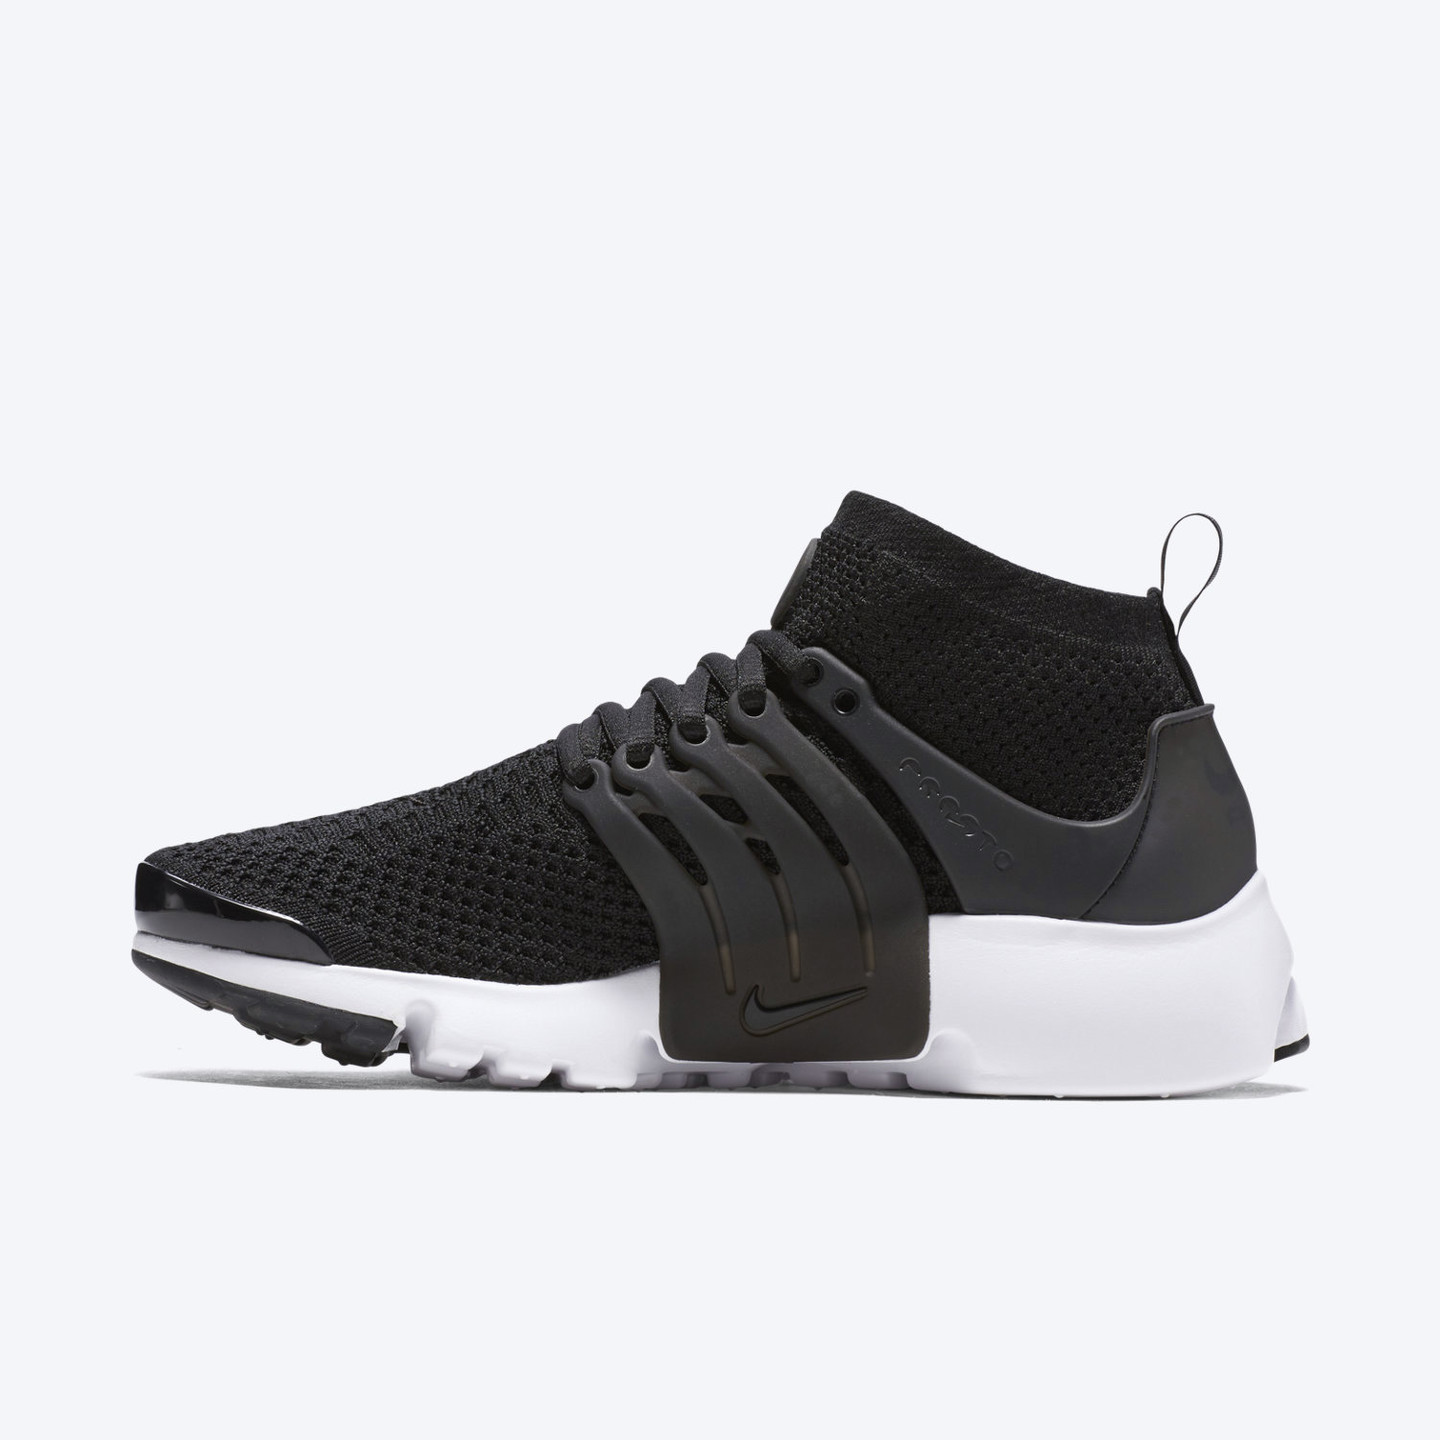 Nike Air Presto Ultra Flyknit Black / White 835570-001-43